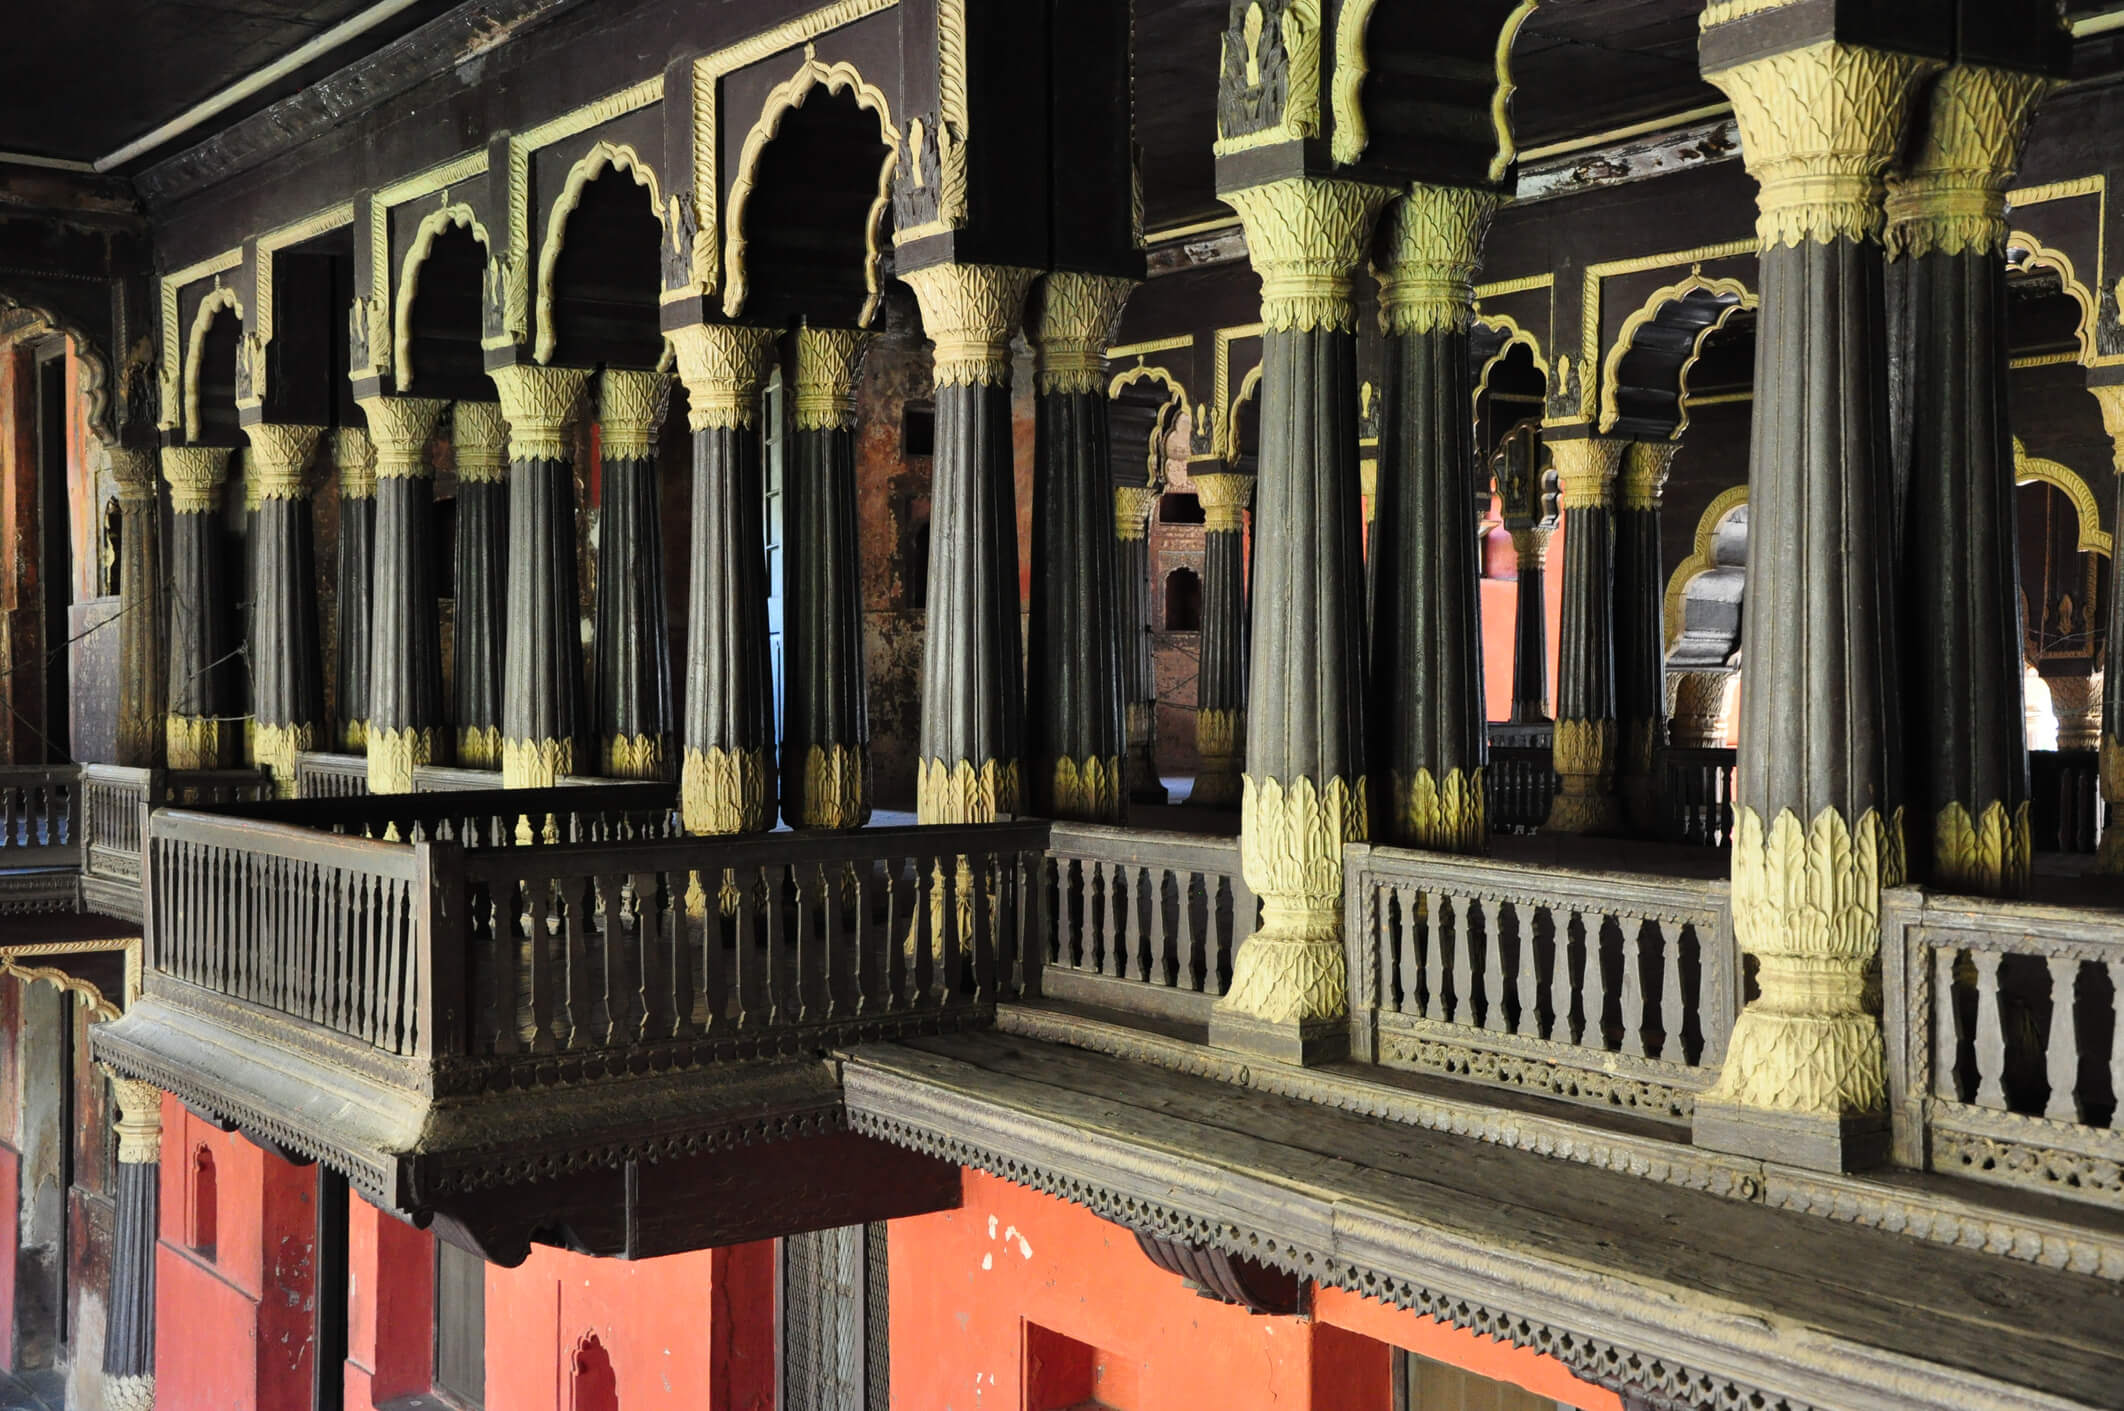 Palace arches and pillars carved from teakwood